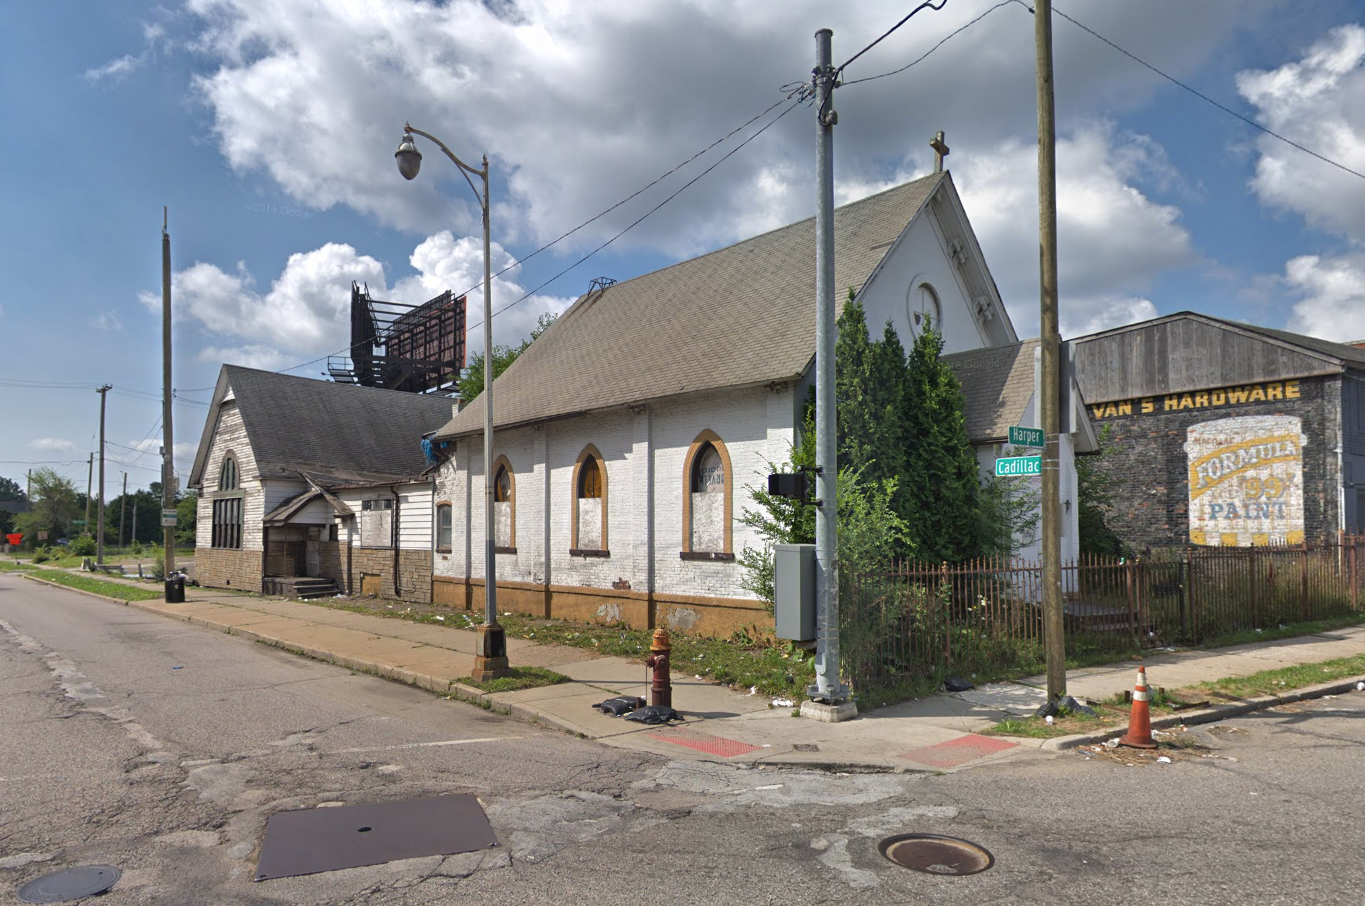 Corner of Cadillac and Harper on Detroit's East Side, site of the former Church of Our Savior Episcopal Church where Thelma and Charles married in 1923 .